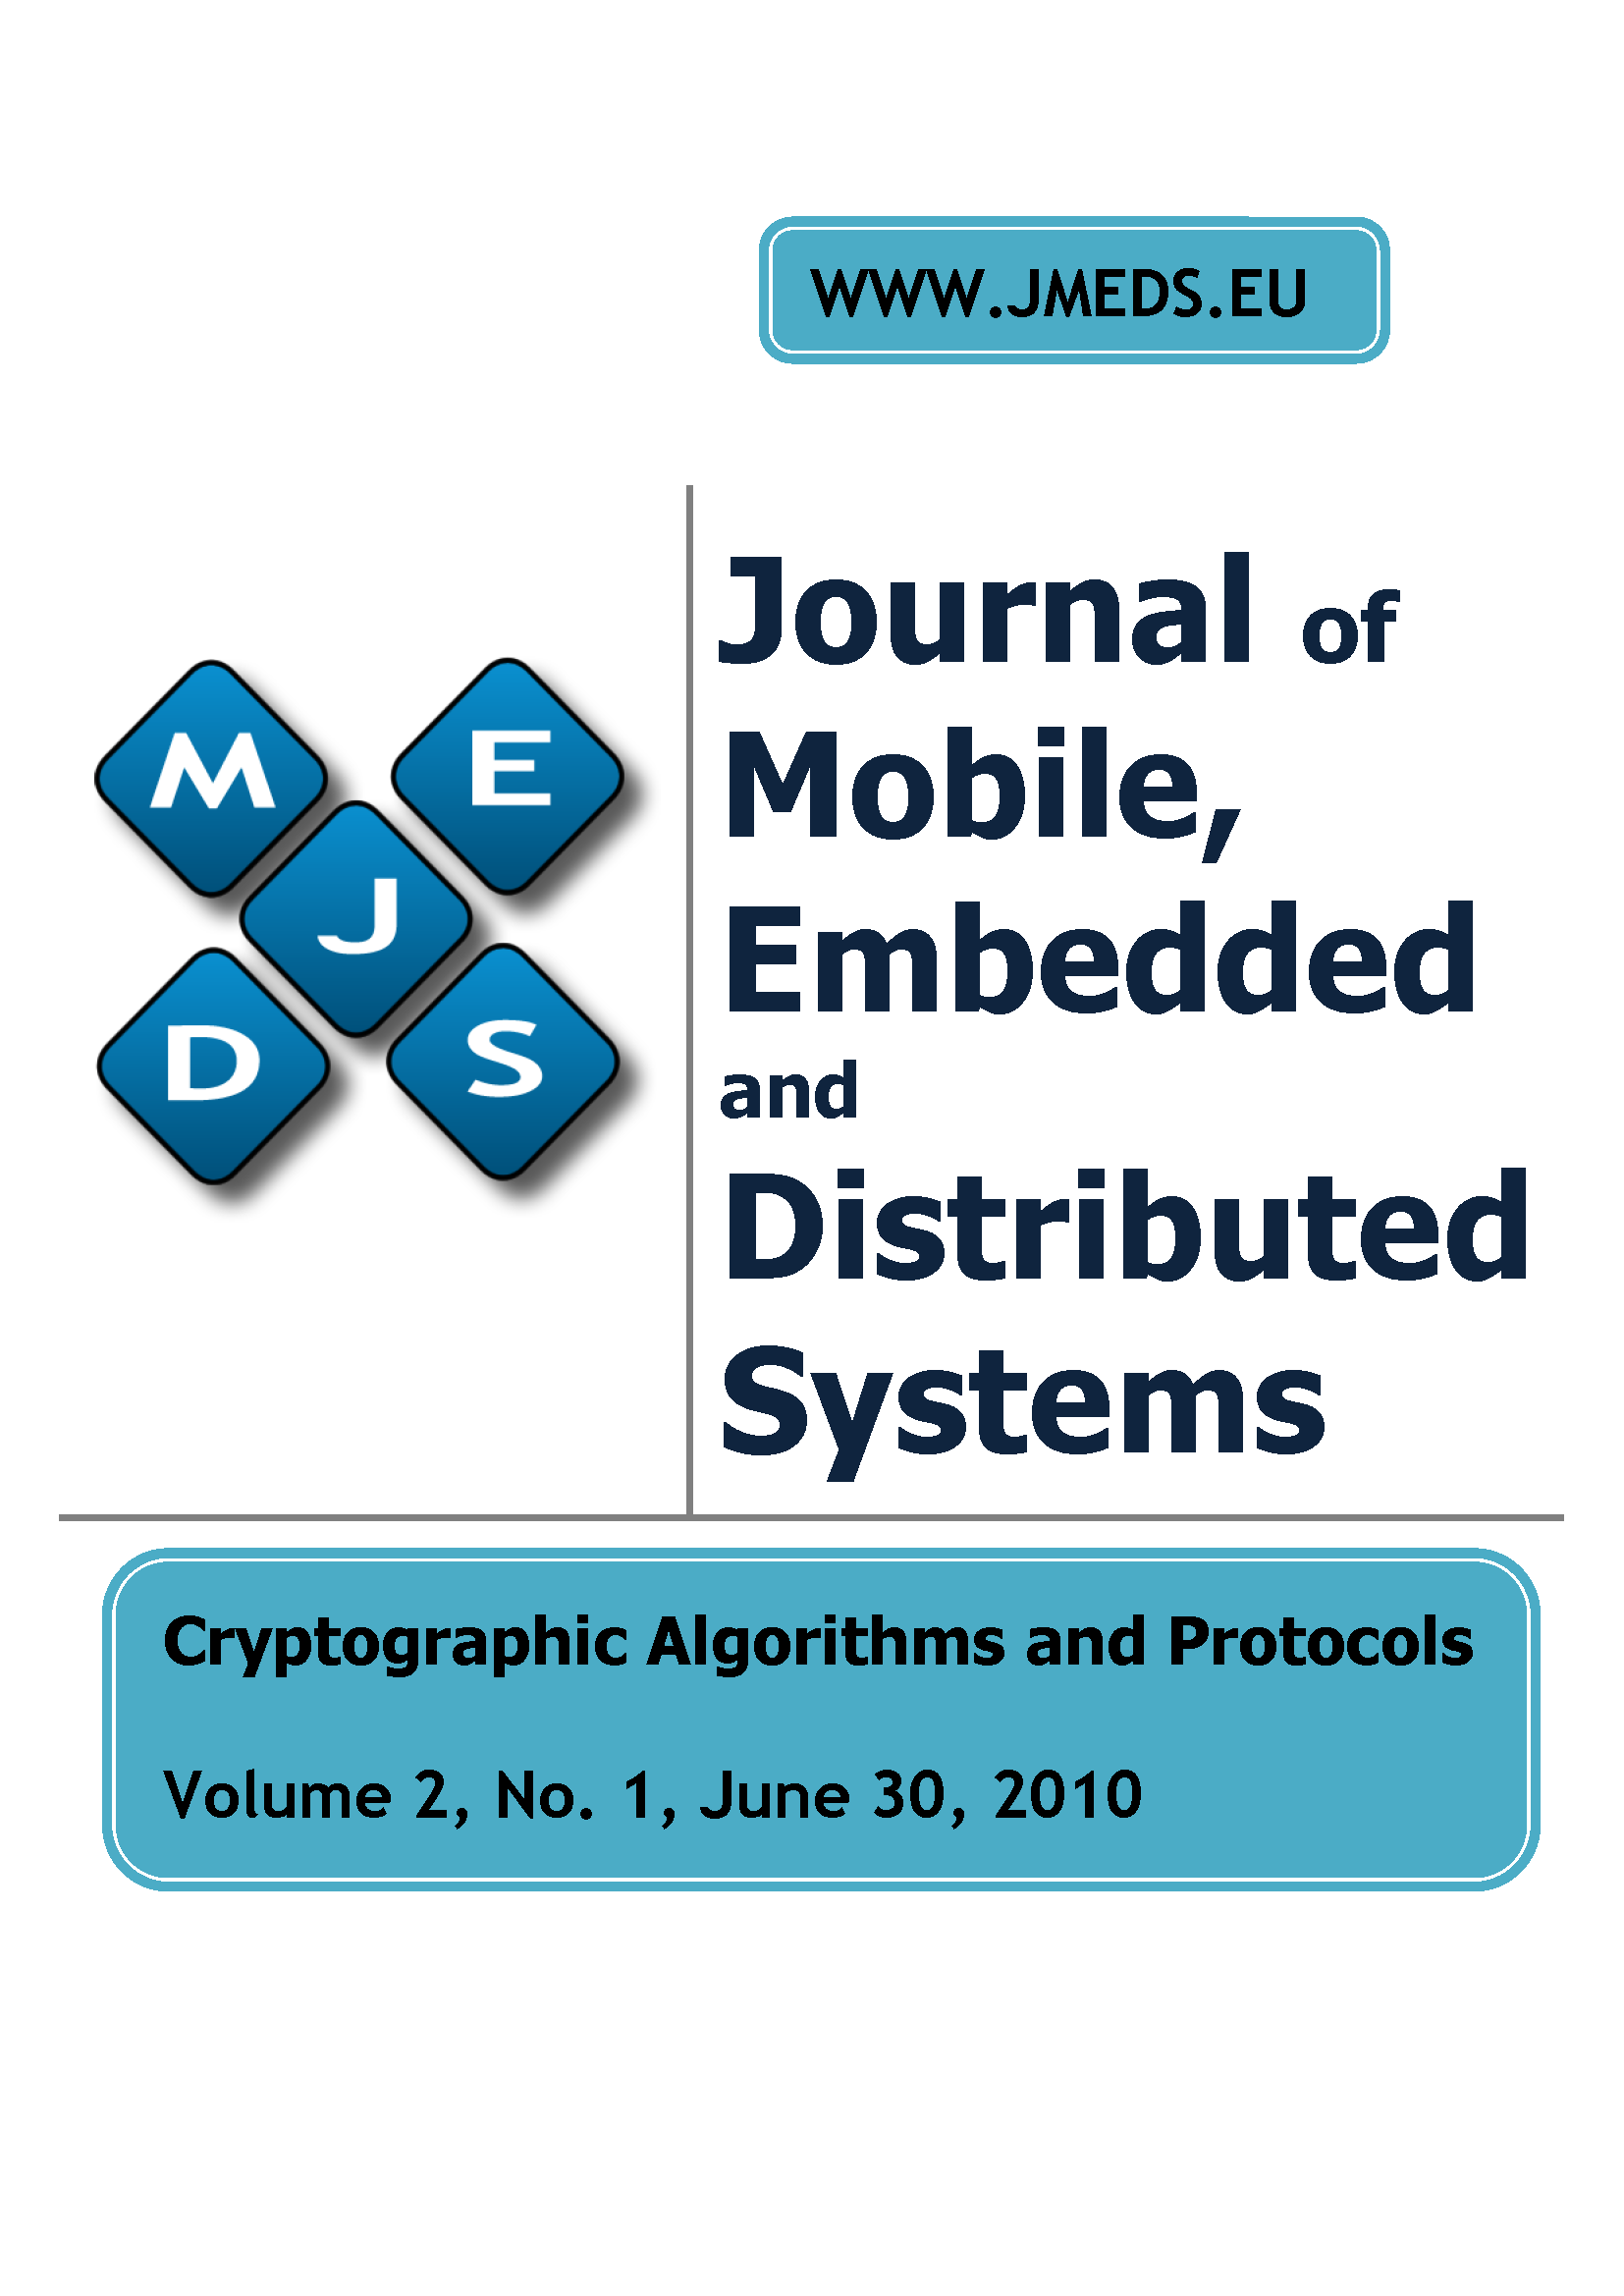 JMEDS, vol 2, no 1, 2010, Cryptographic Algorithms and Protocols